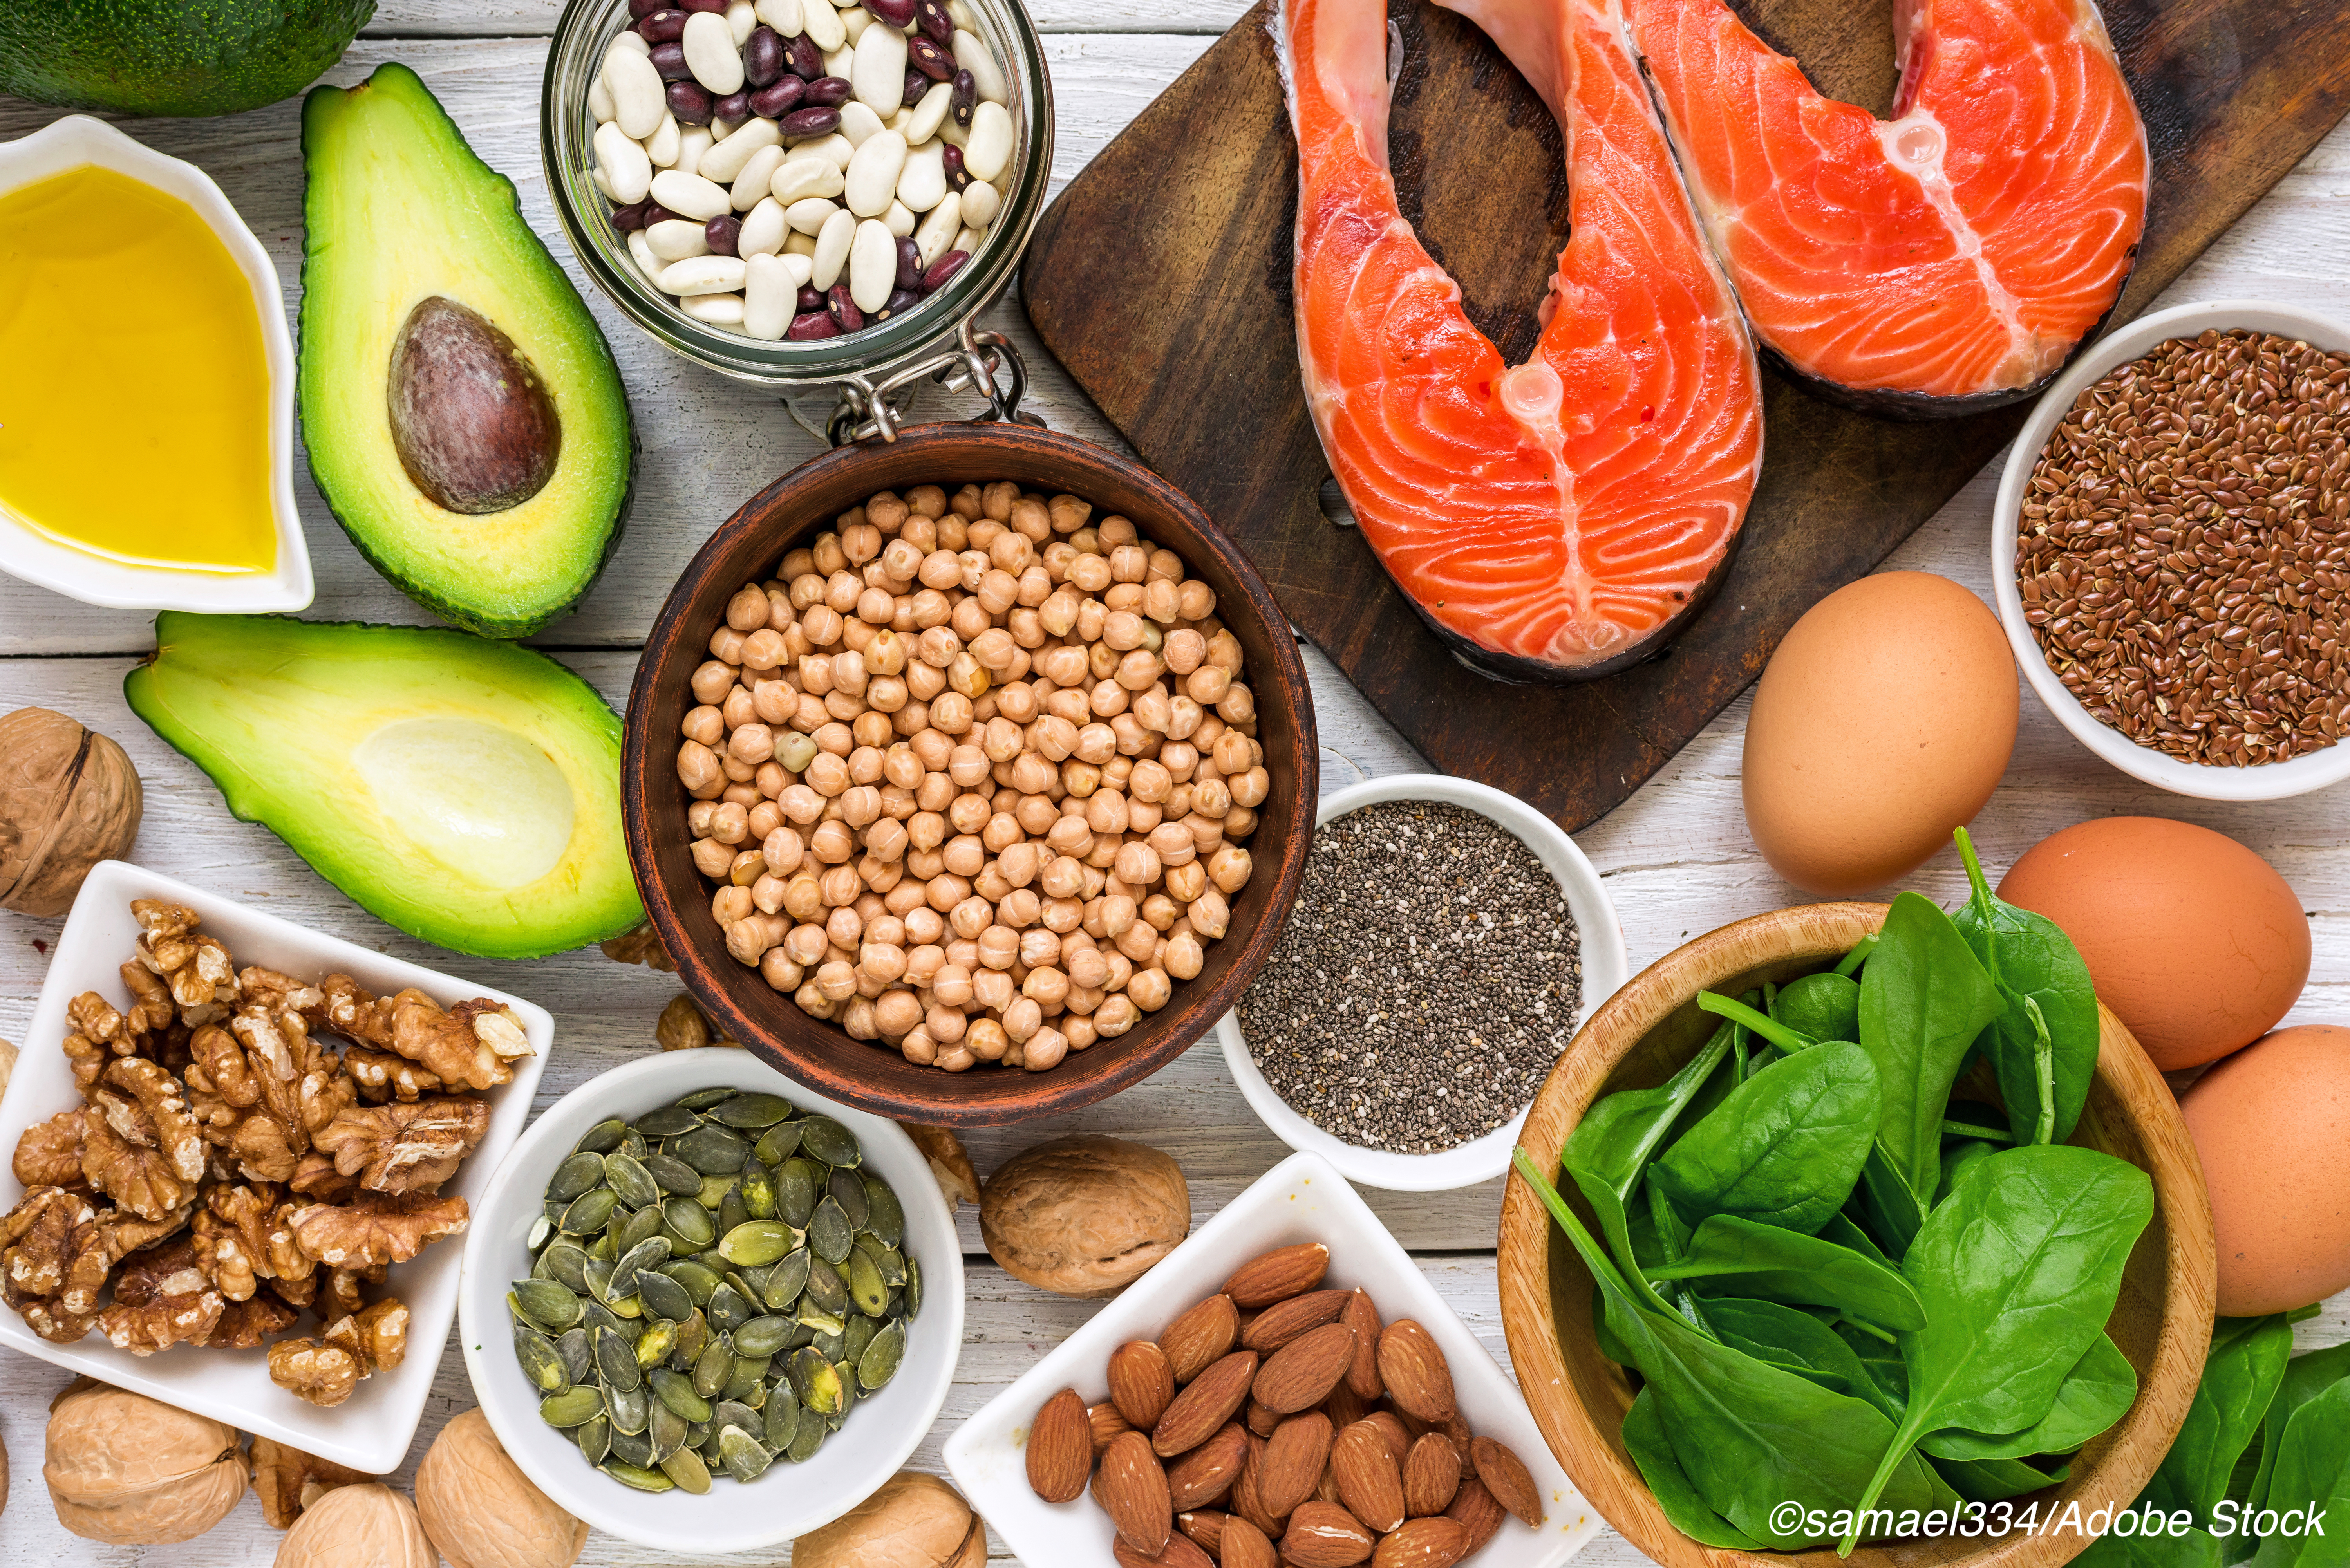 STEMI Patients Fare Better With Higher Circulating Levels of Omega-3 Fatty Acids